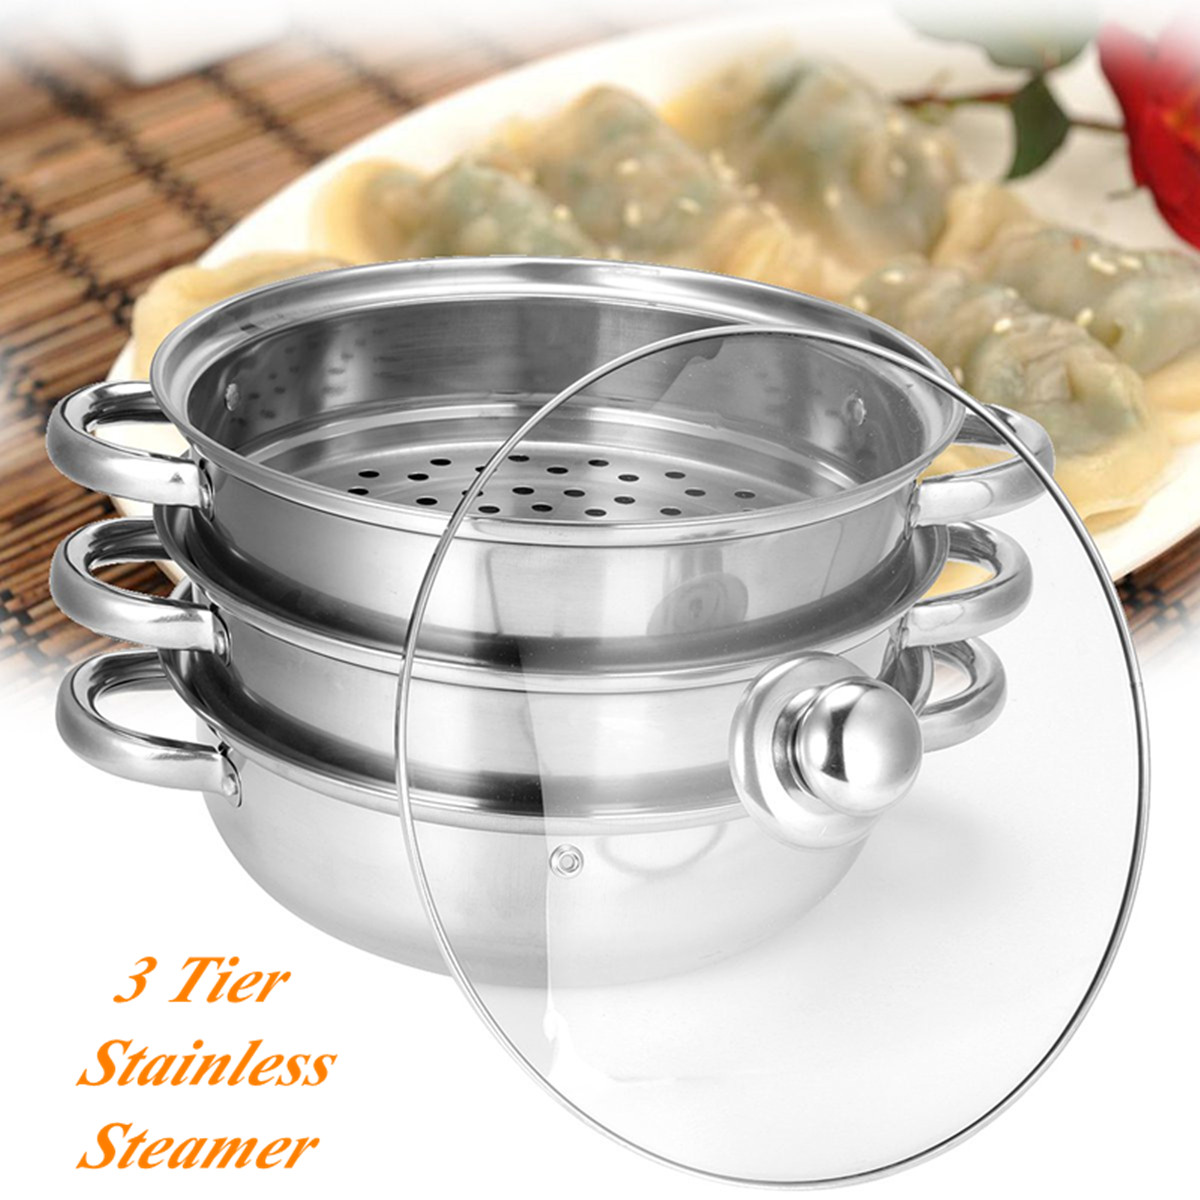 3 Tier Stainless Steel Steamer Saucepan Pot Thicken Boiler Induction Compatible Kitchen Home Steaming Soup Pot Steamer Cookware